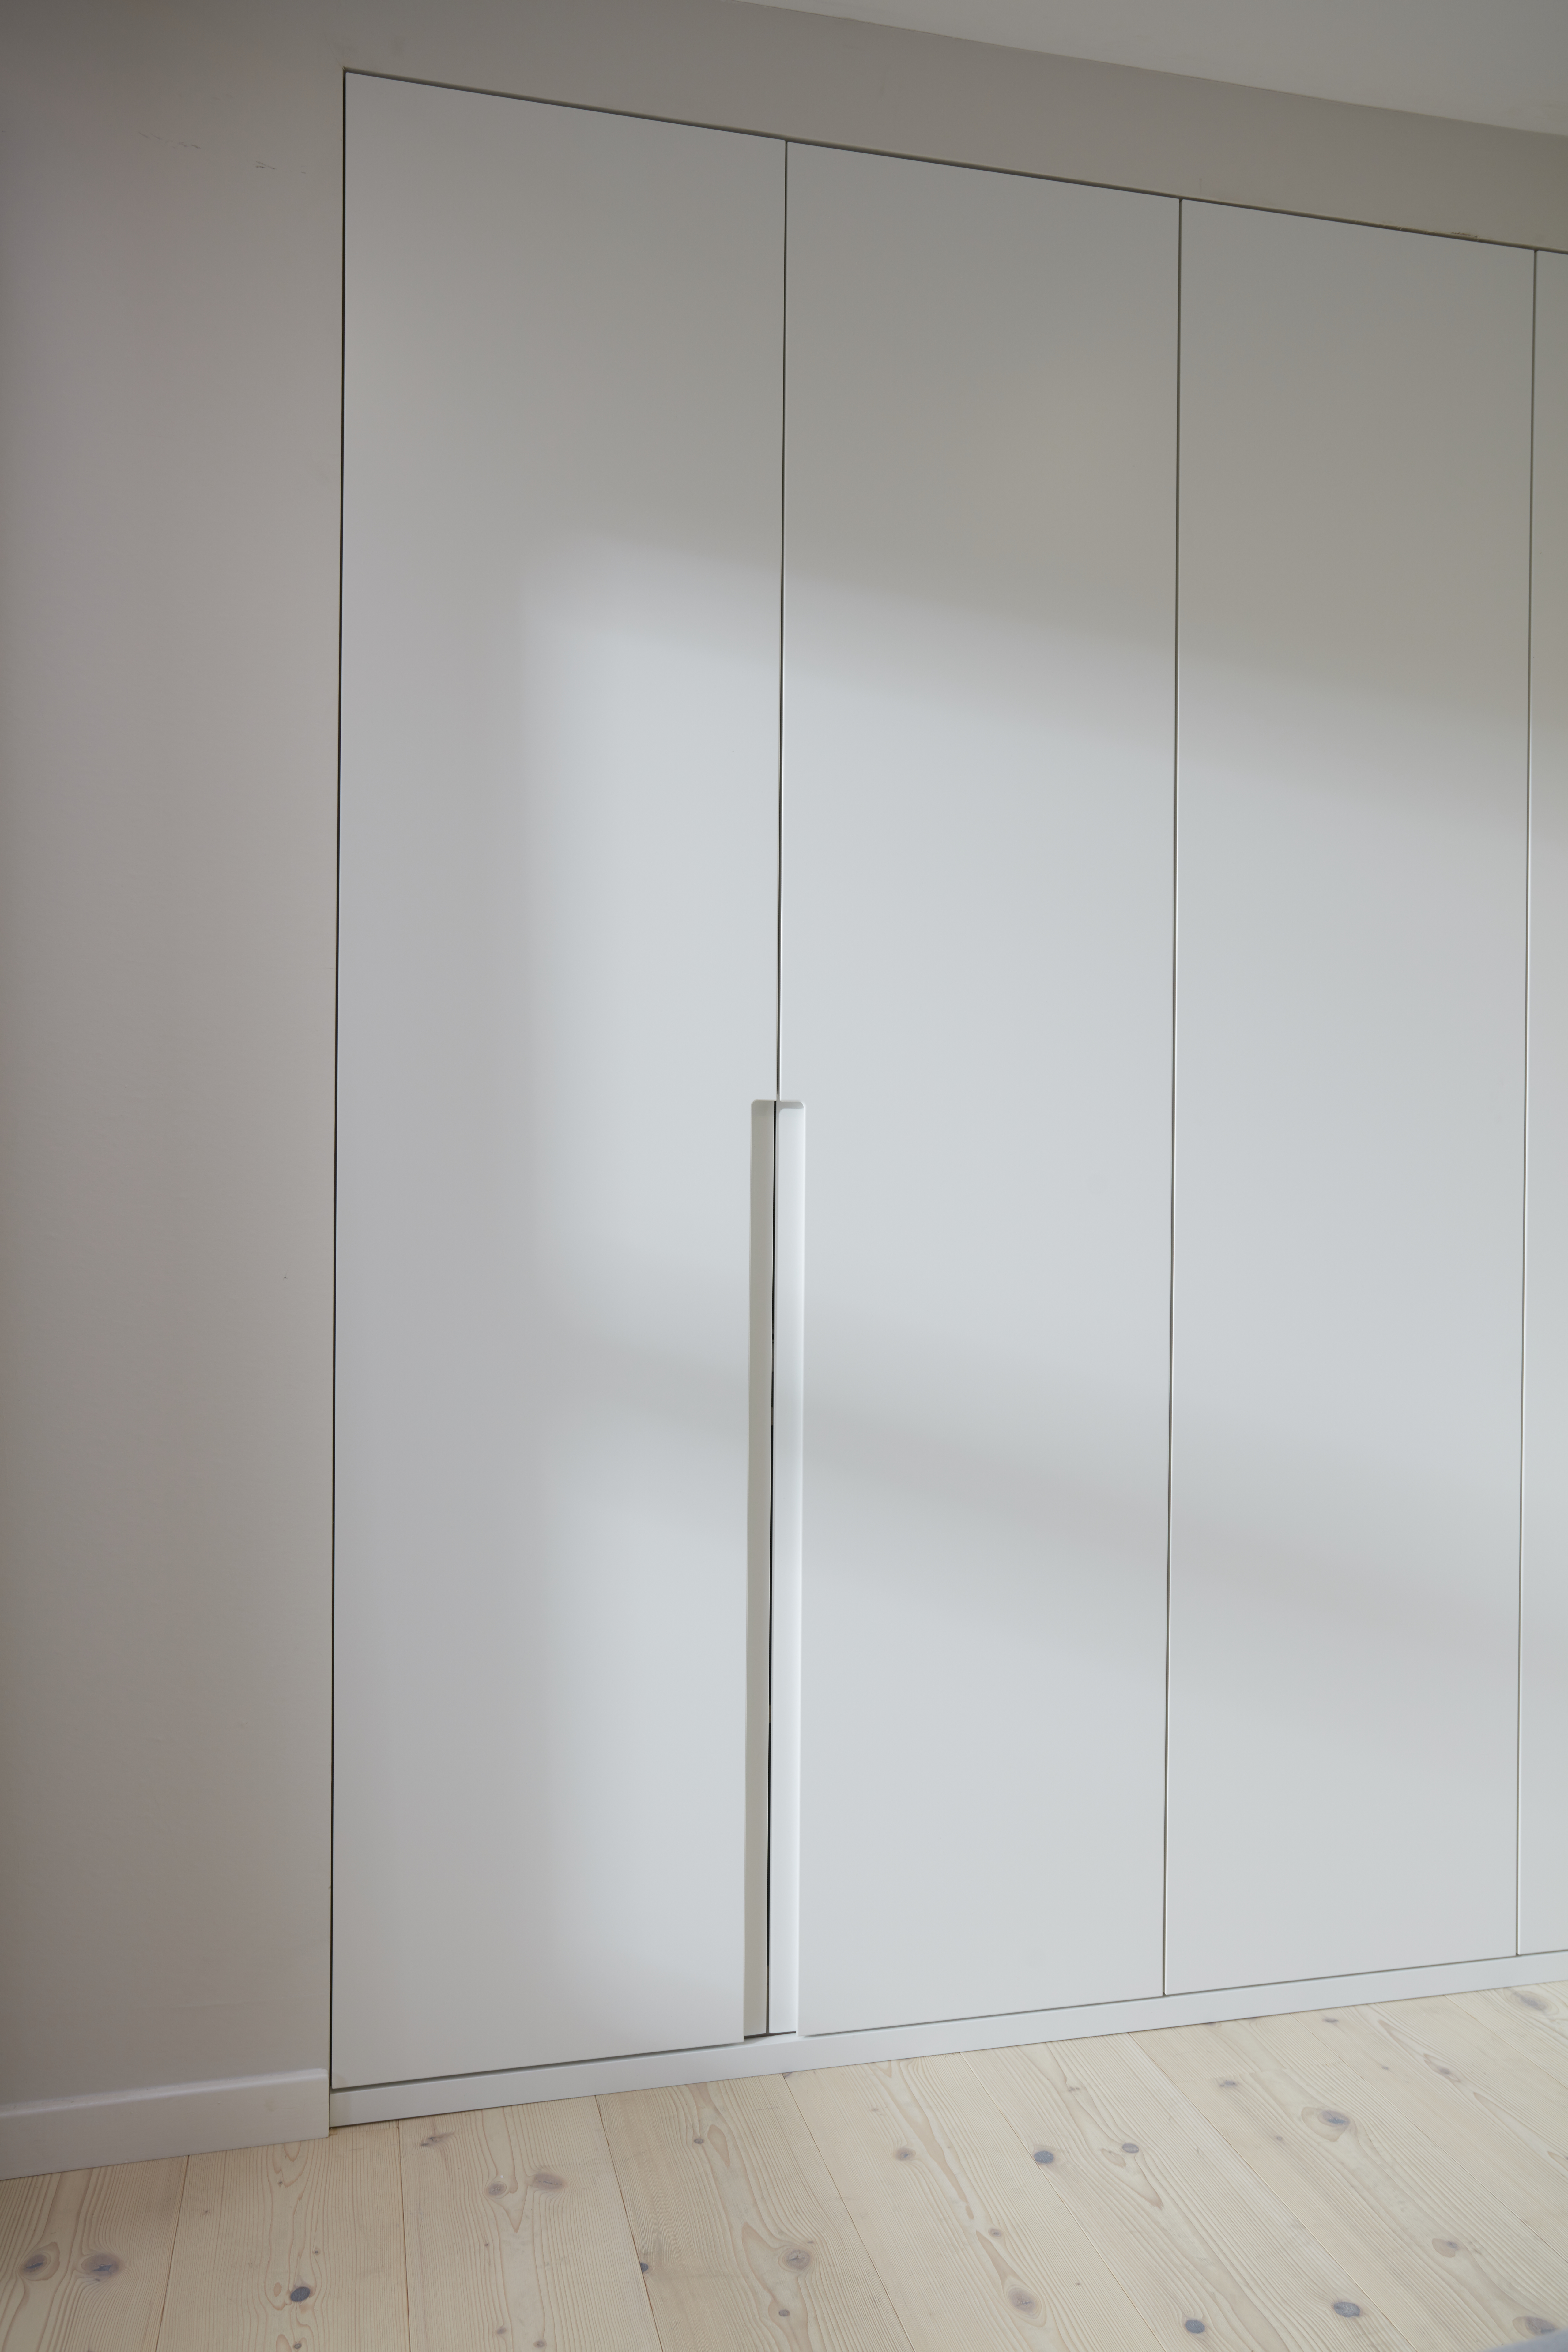 Fitted wardrobes help with Spring cleaning